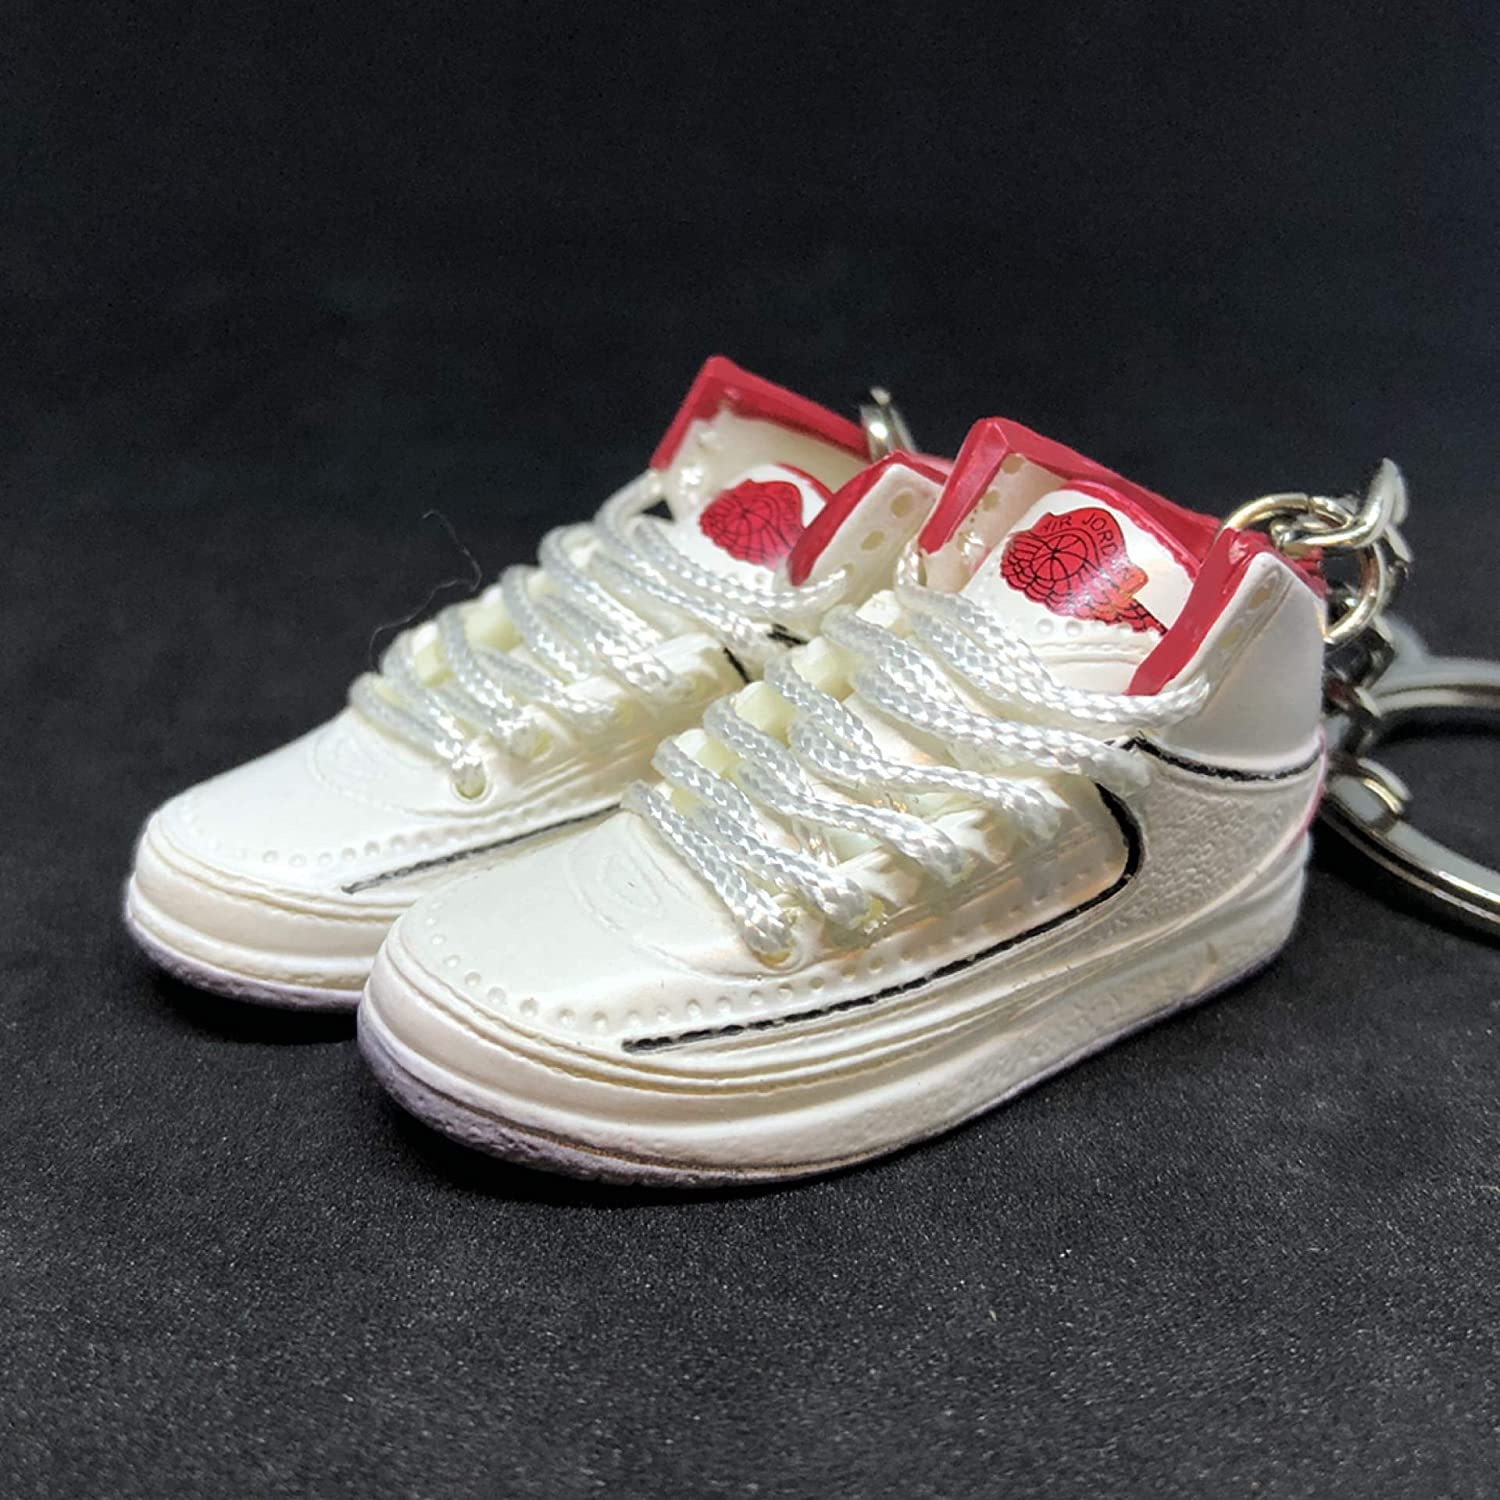 21ae5ff64bd Amazon.com : Pair Air Jordan II 2 Retro White Red OG Sneakers Shoes 3D  Keychain 1:6 Figure : Everything Else